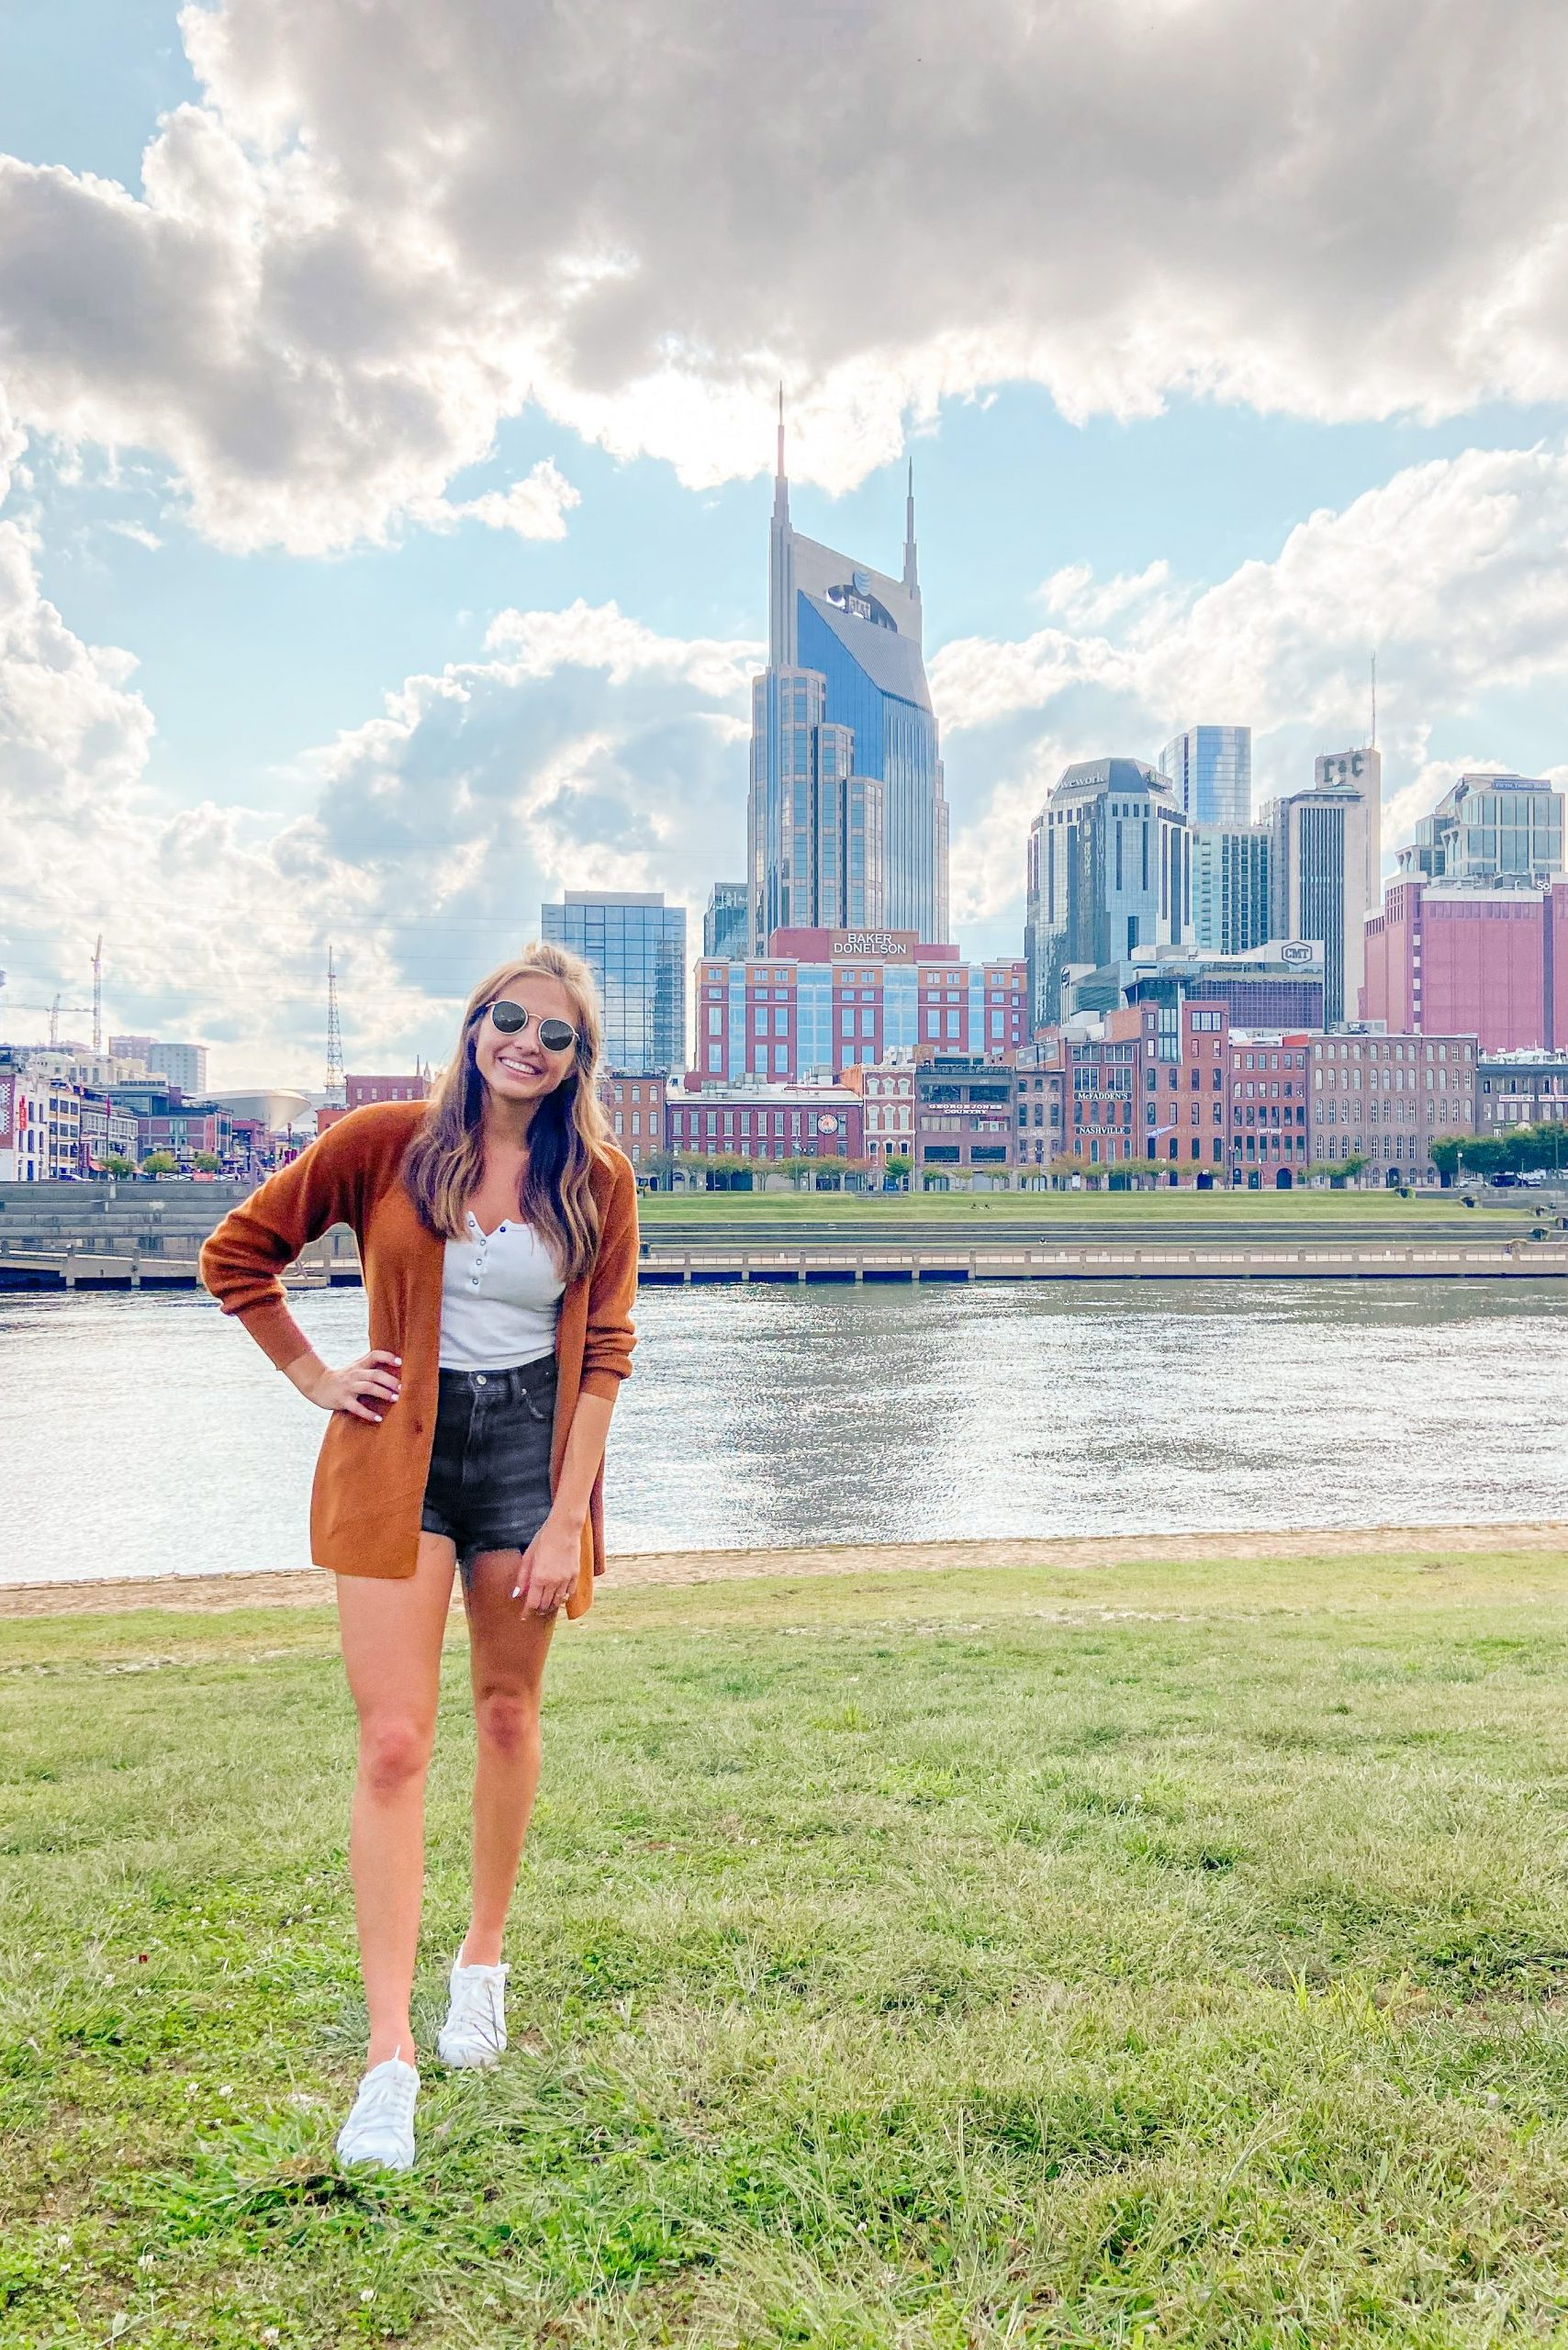 Girl standing on the grass with nashville cityscape in the background